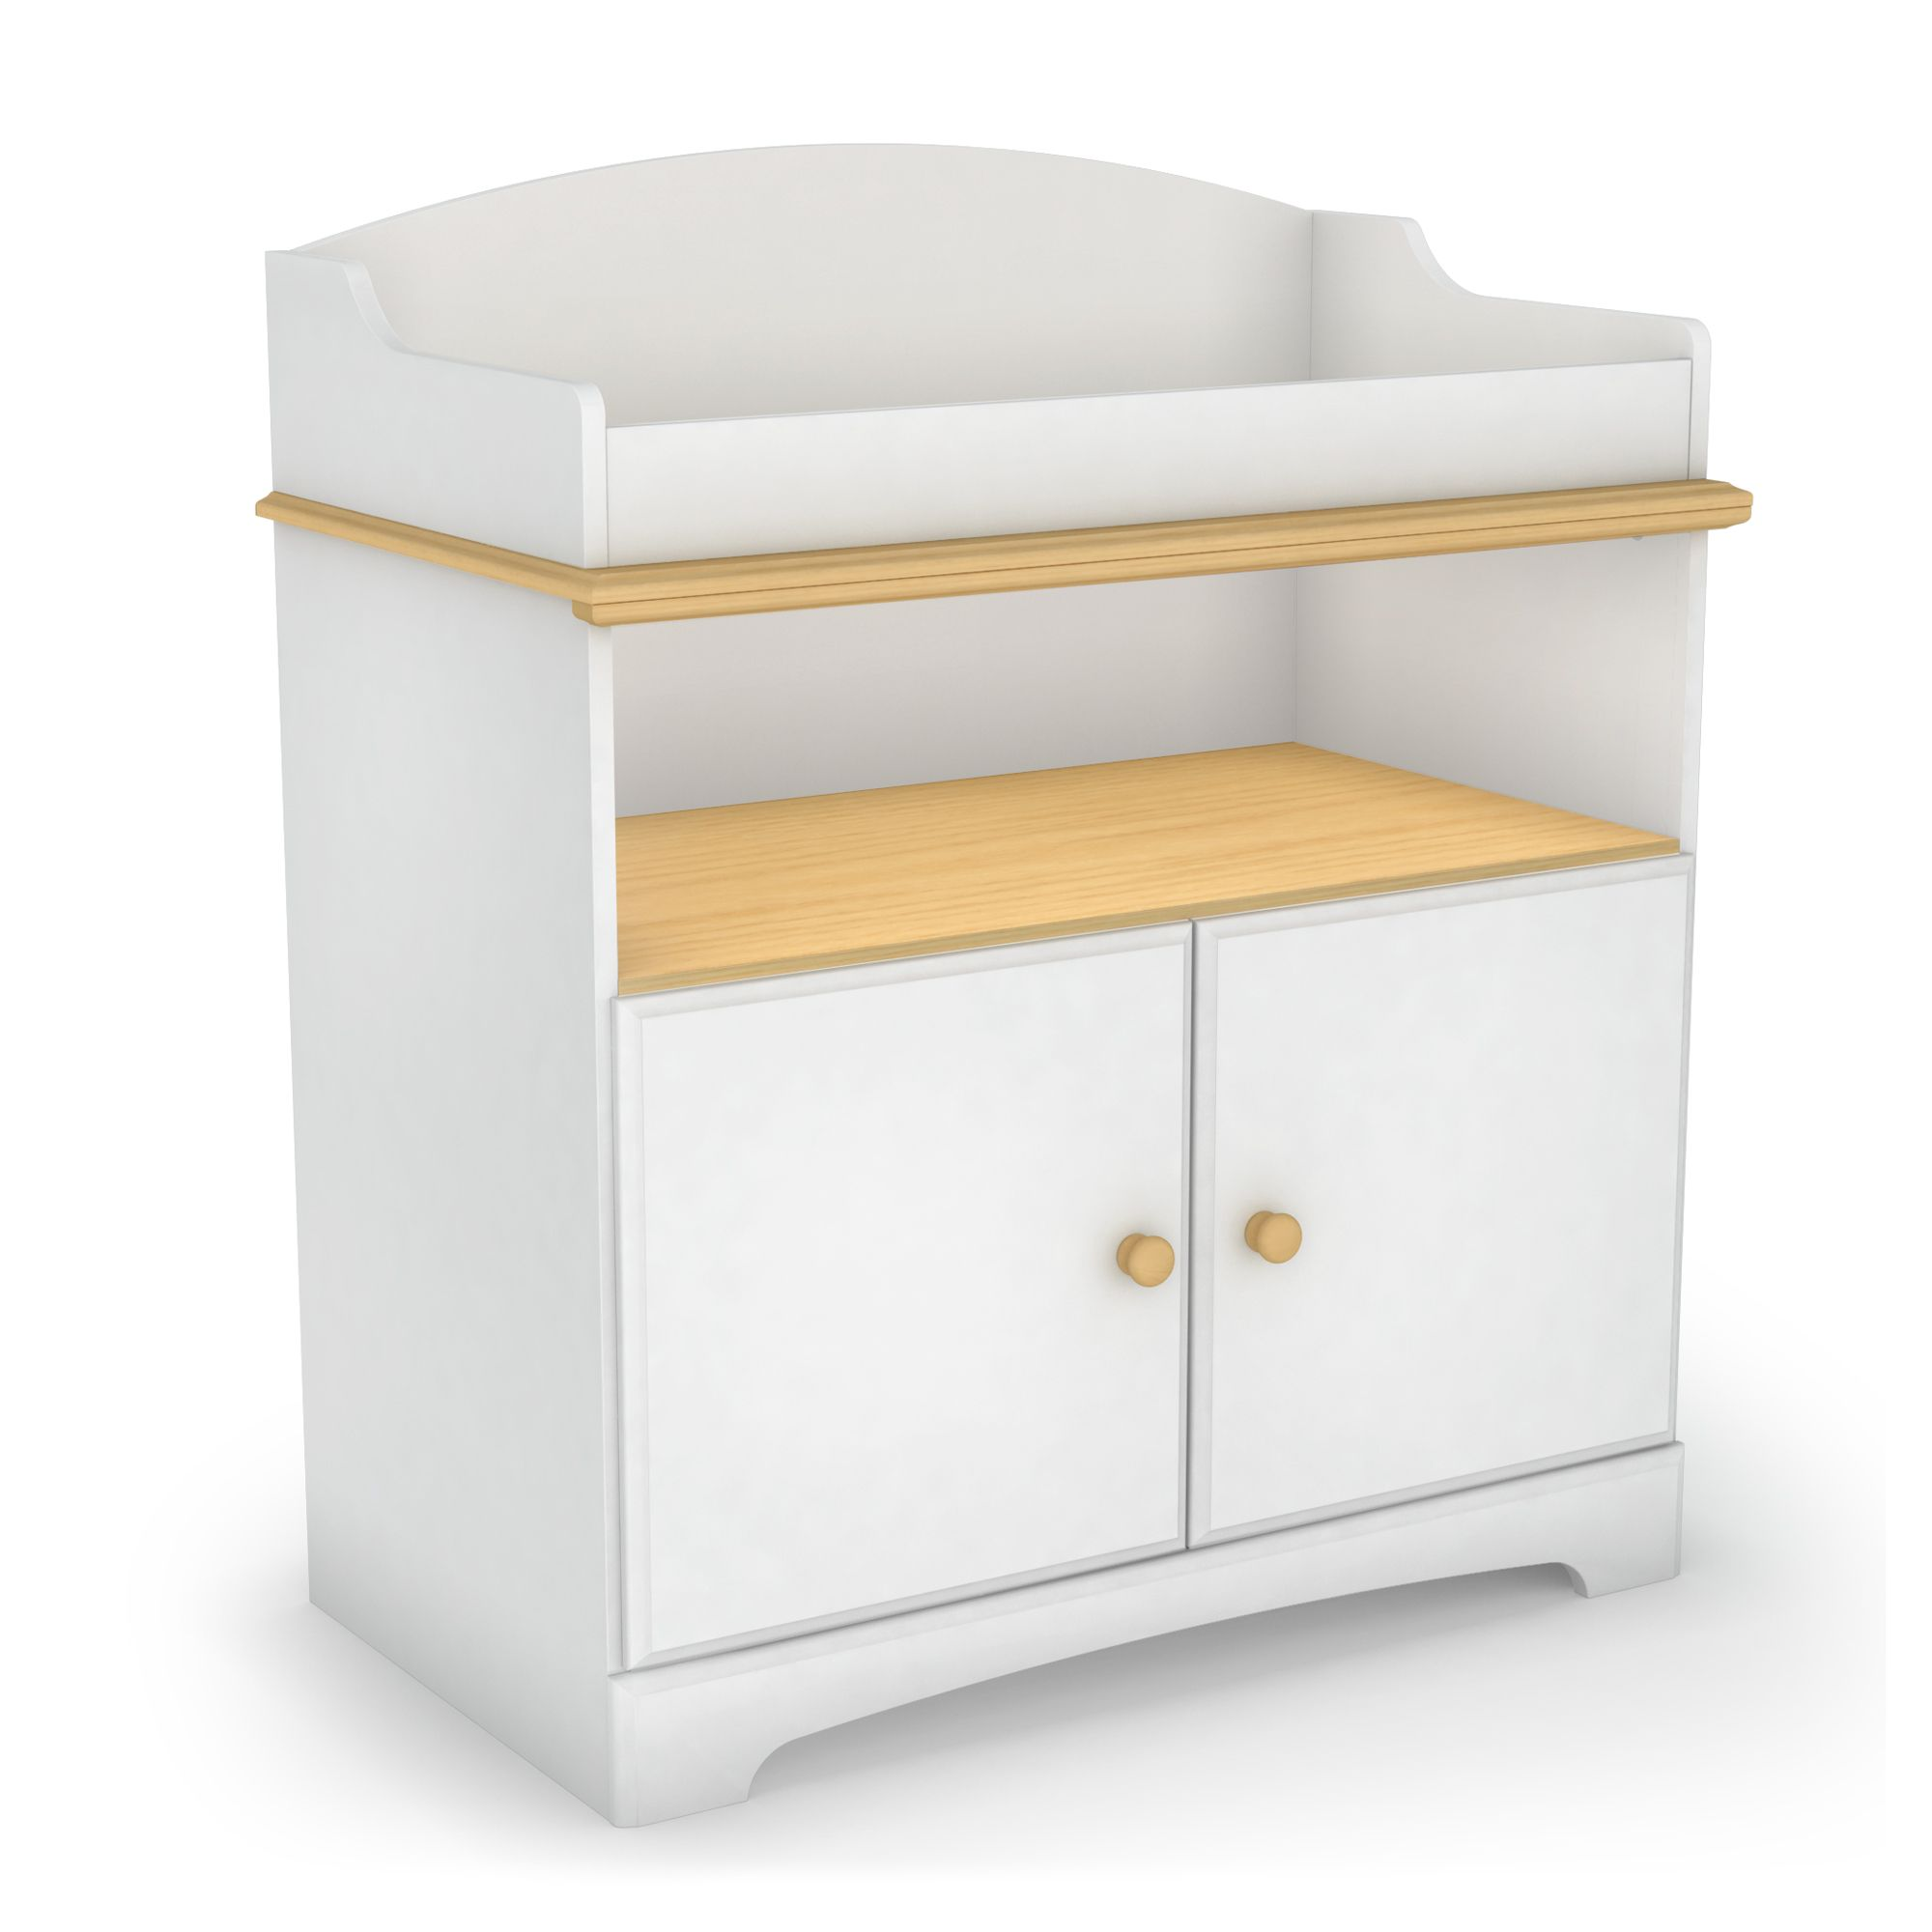 South Shore Summertime Changing Table - Pure White and Maple